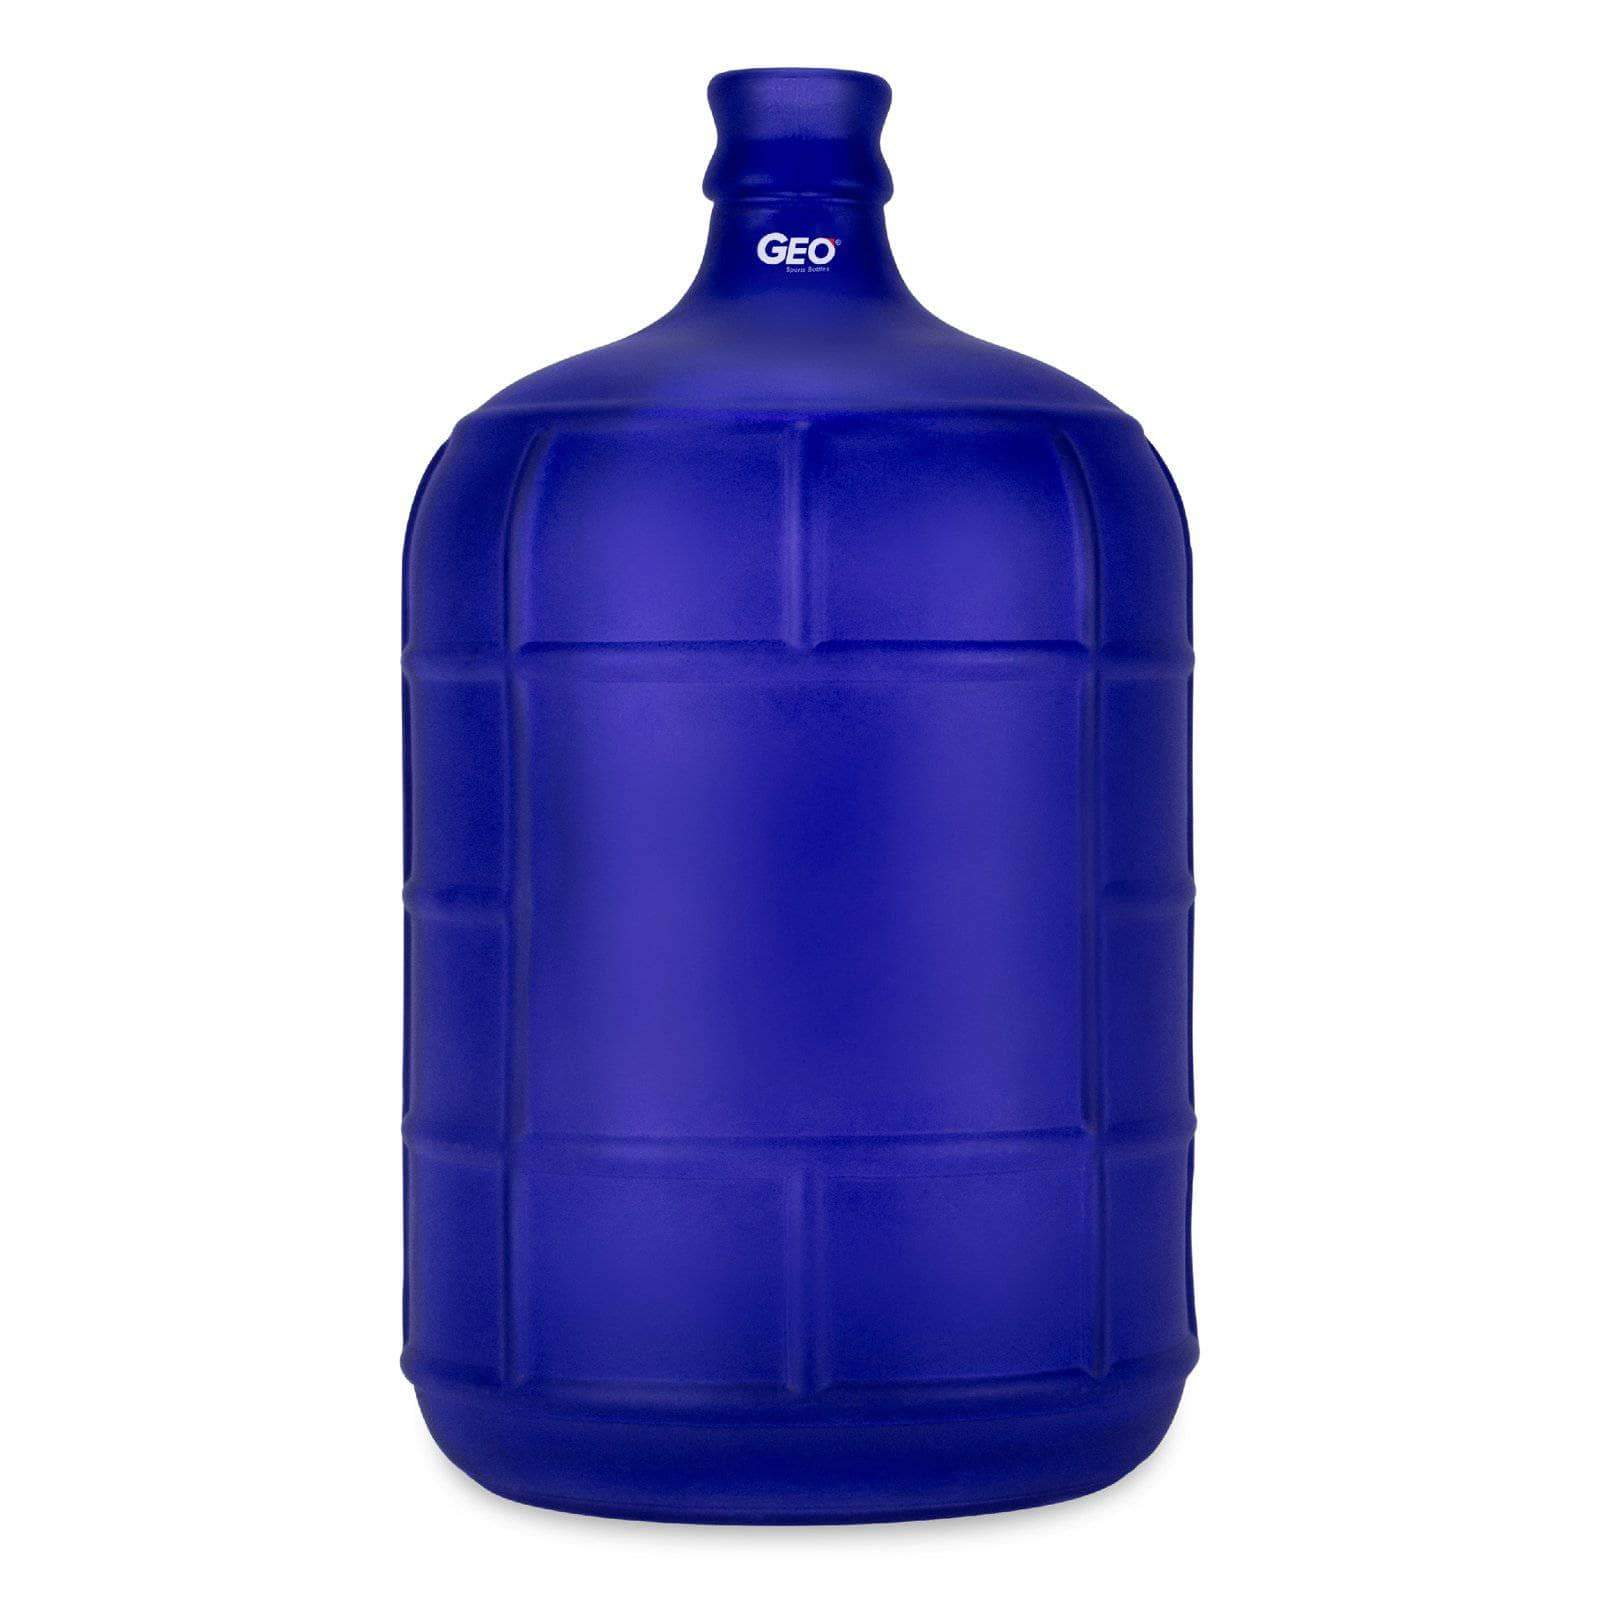 Geo Bottles Glass Bottles Dark Blue 3 Gallon Round Frosted Glass Carboy w/55mm Crown Top